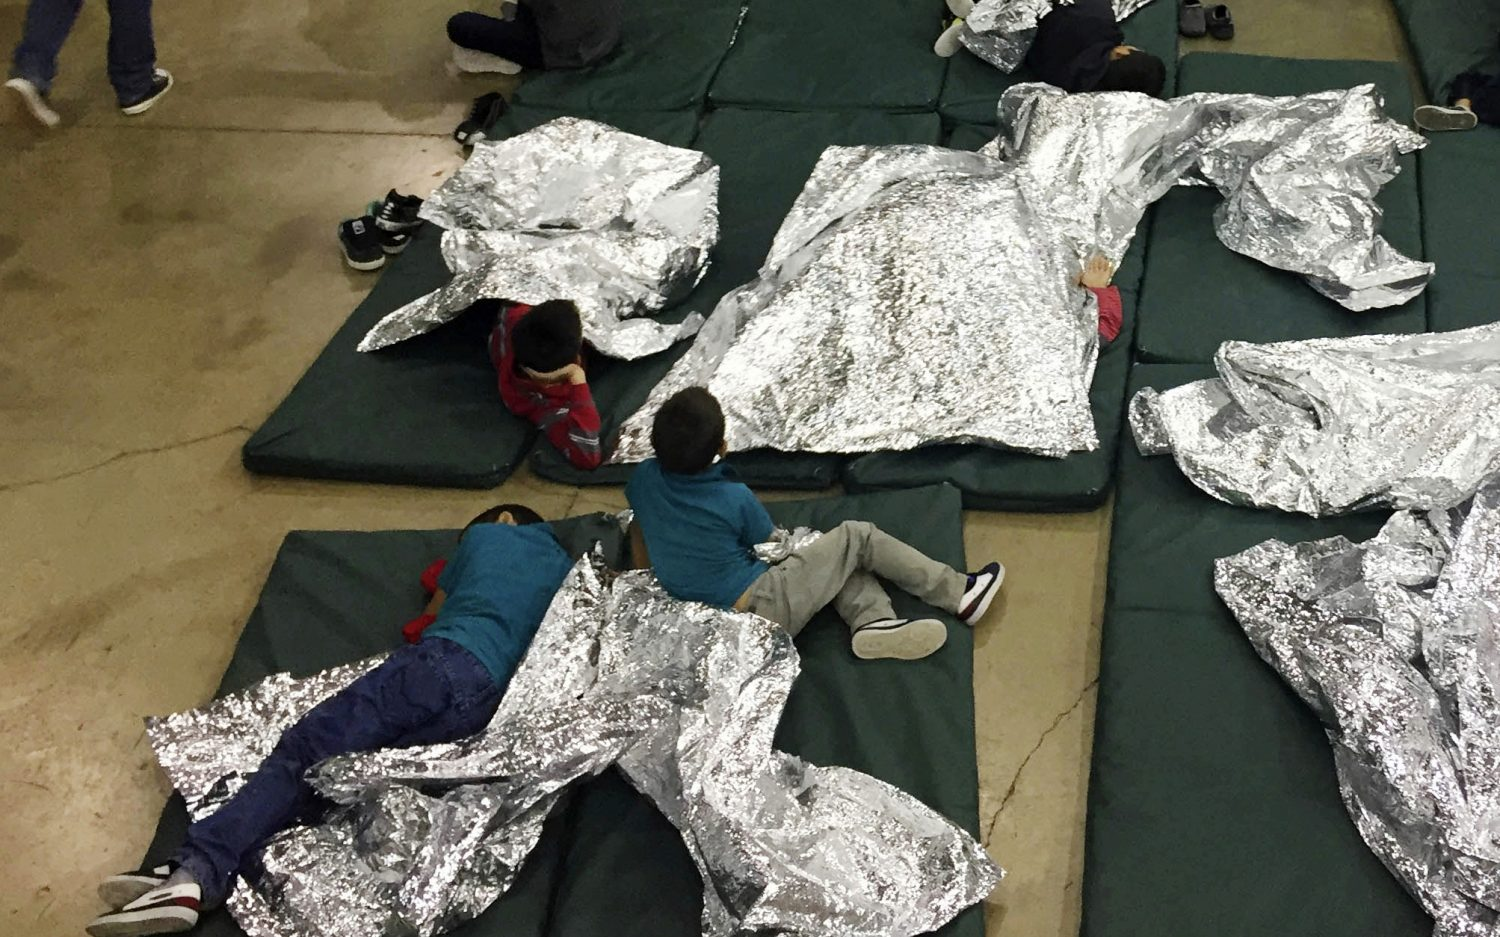 Surge of migrant children brings wave of trauma to U.S.